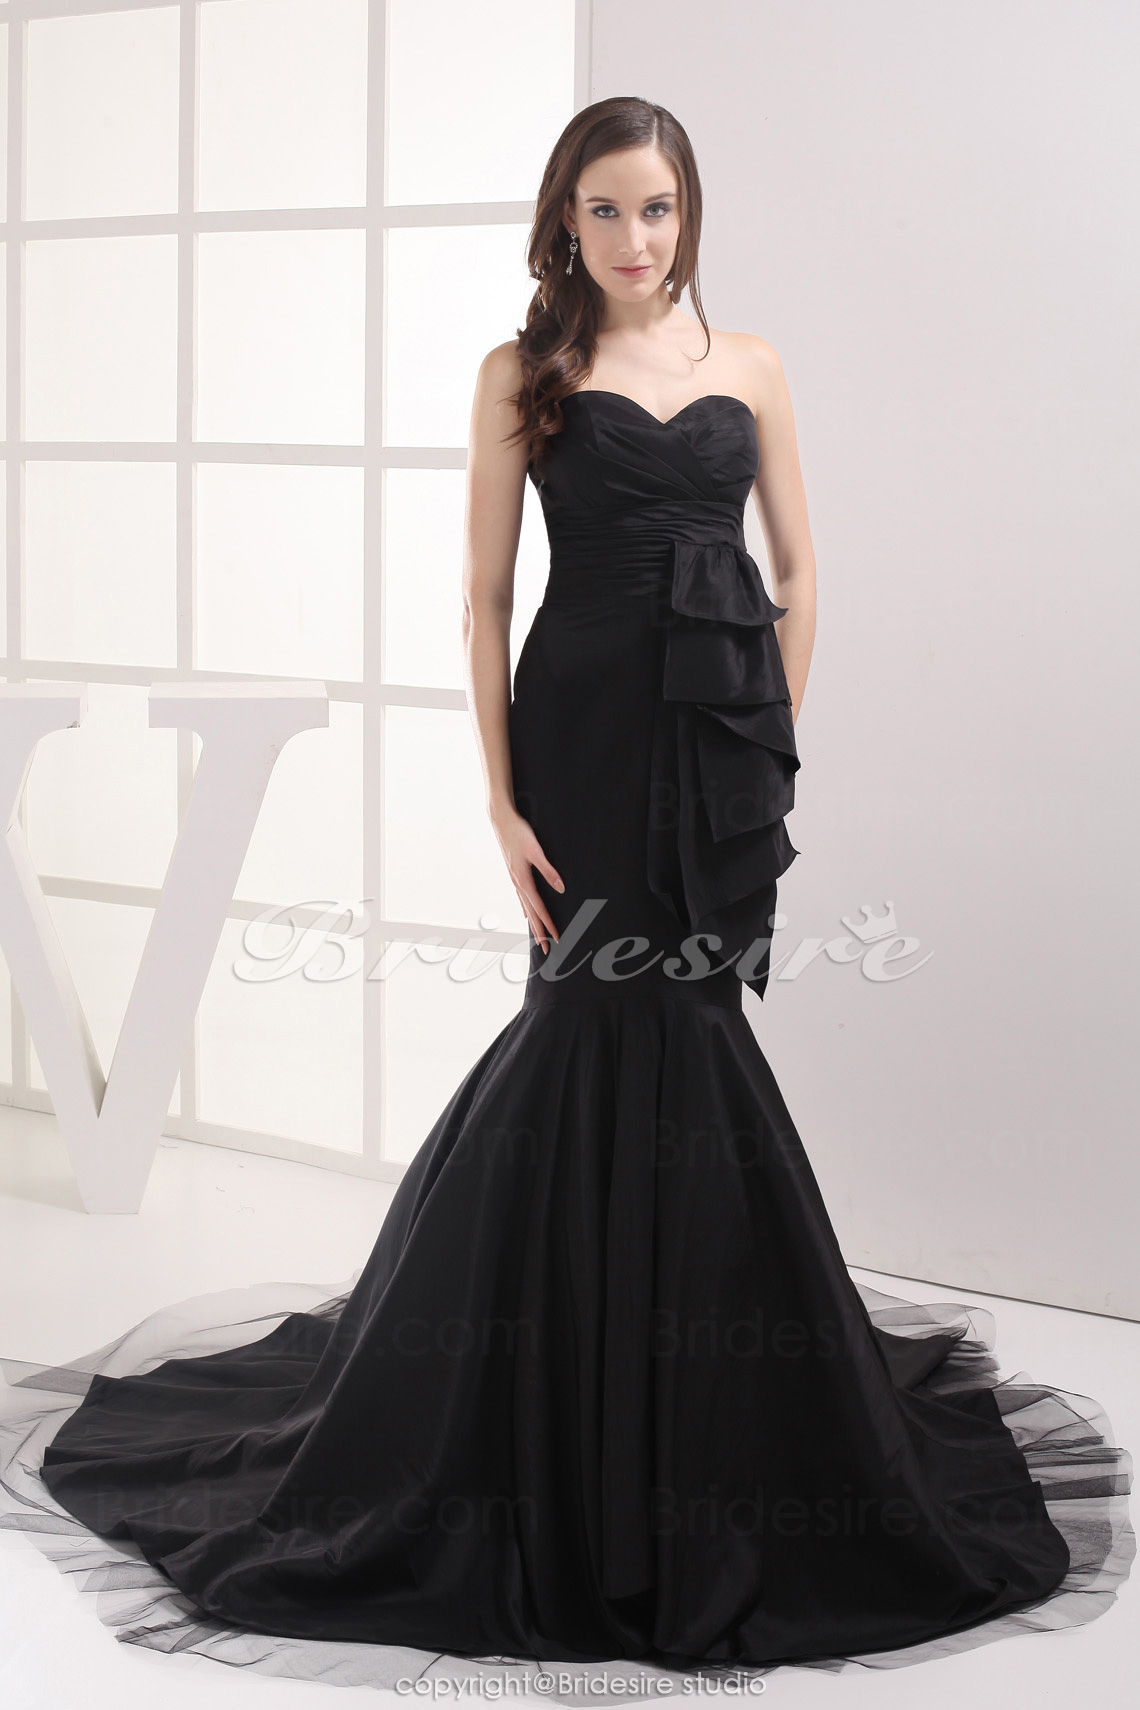 Trumpet/Mermaid Sweetheart Chapel Train Sleeveless Taffeta Dress